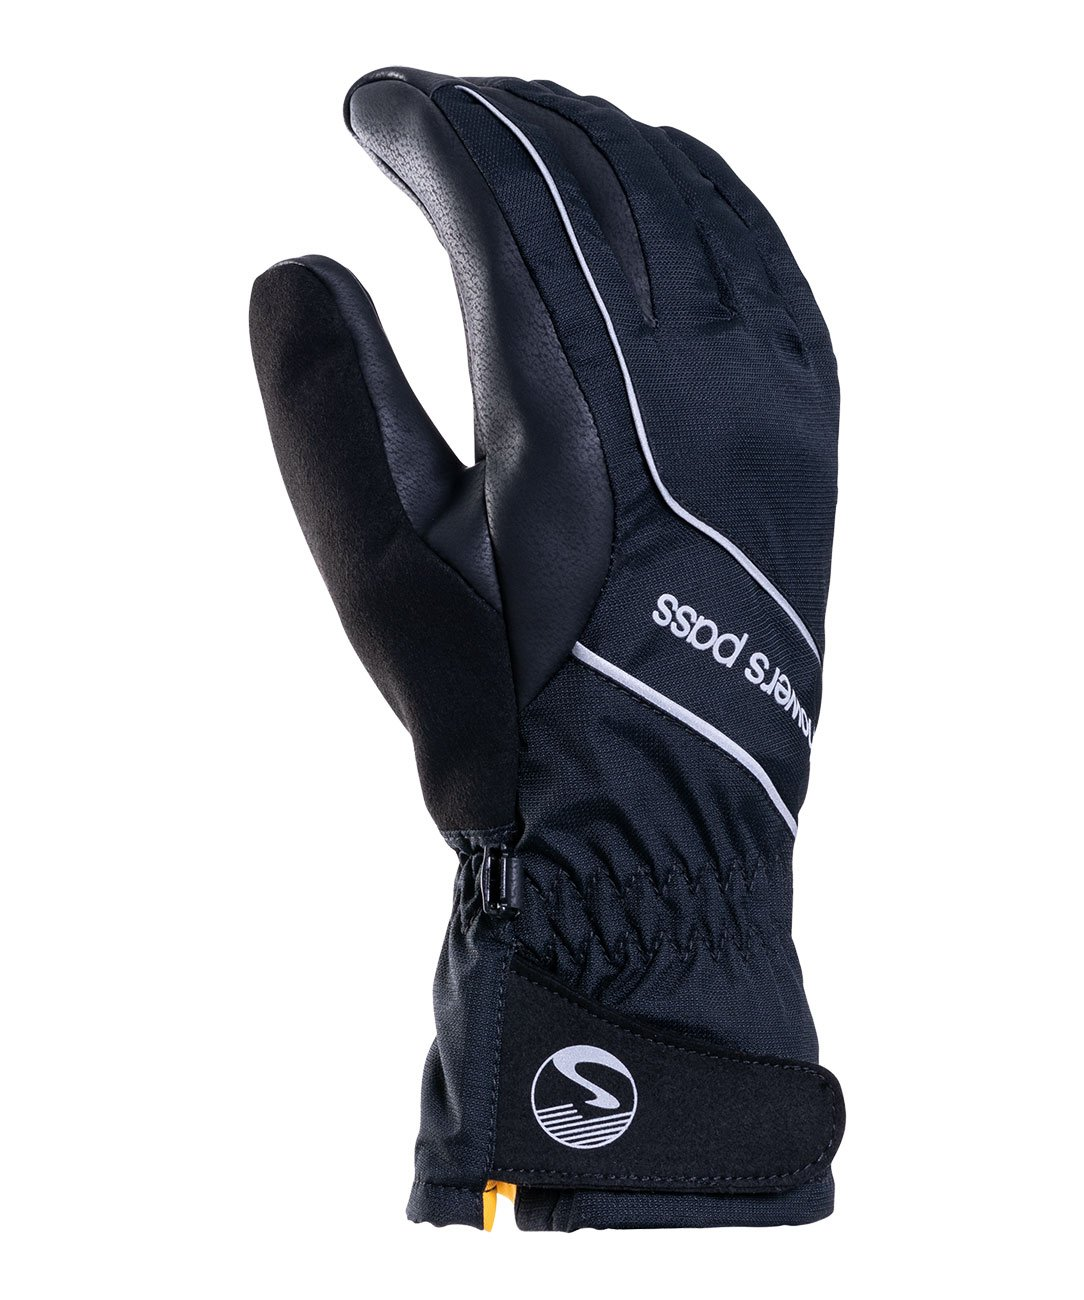 Women's Crosspoint Hardshell WP Glove